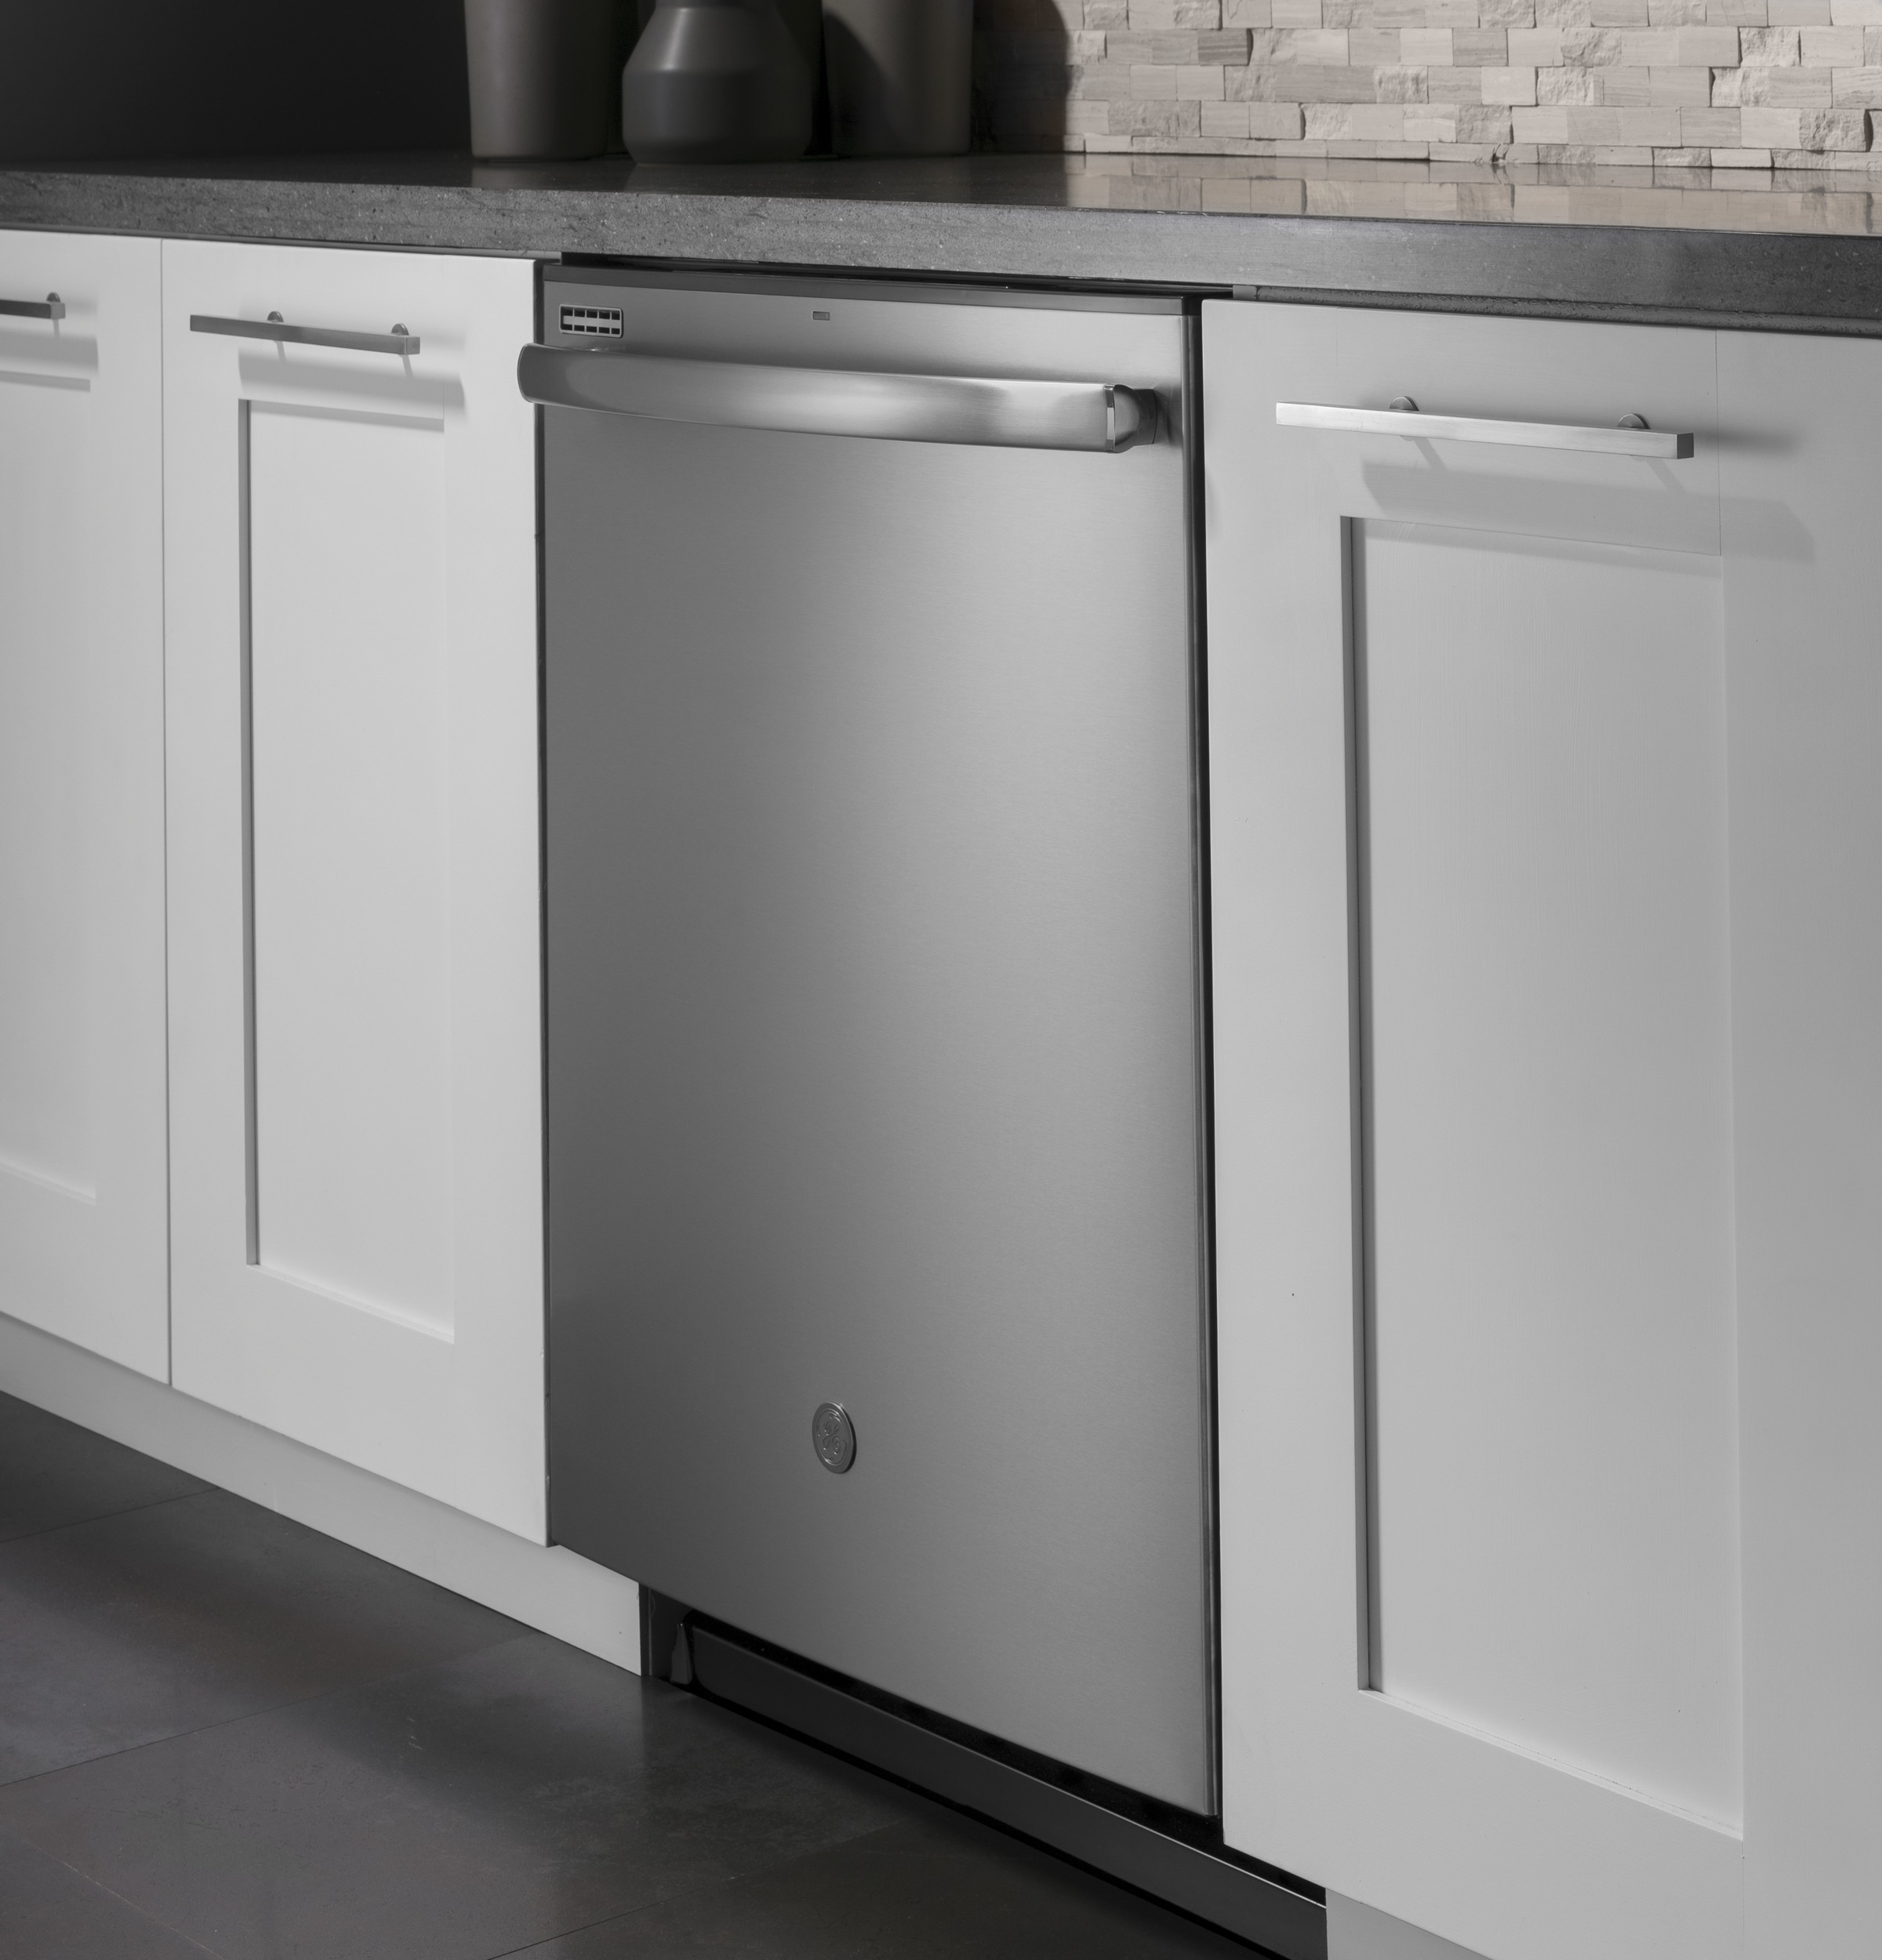 Model: GDT605PGMBB   GE GE® Top Control with Plastic Interior Dishwasher with Sanitize Cycle & Dry Boost